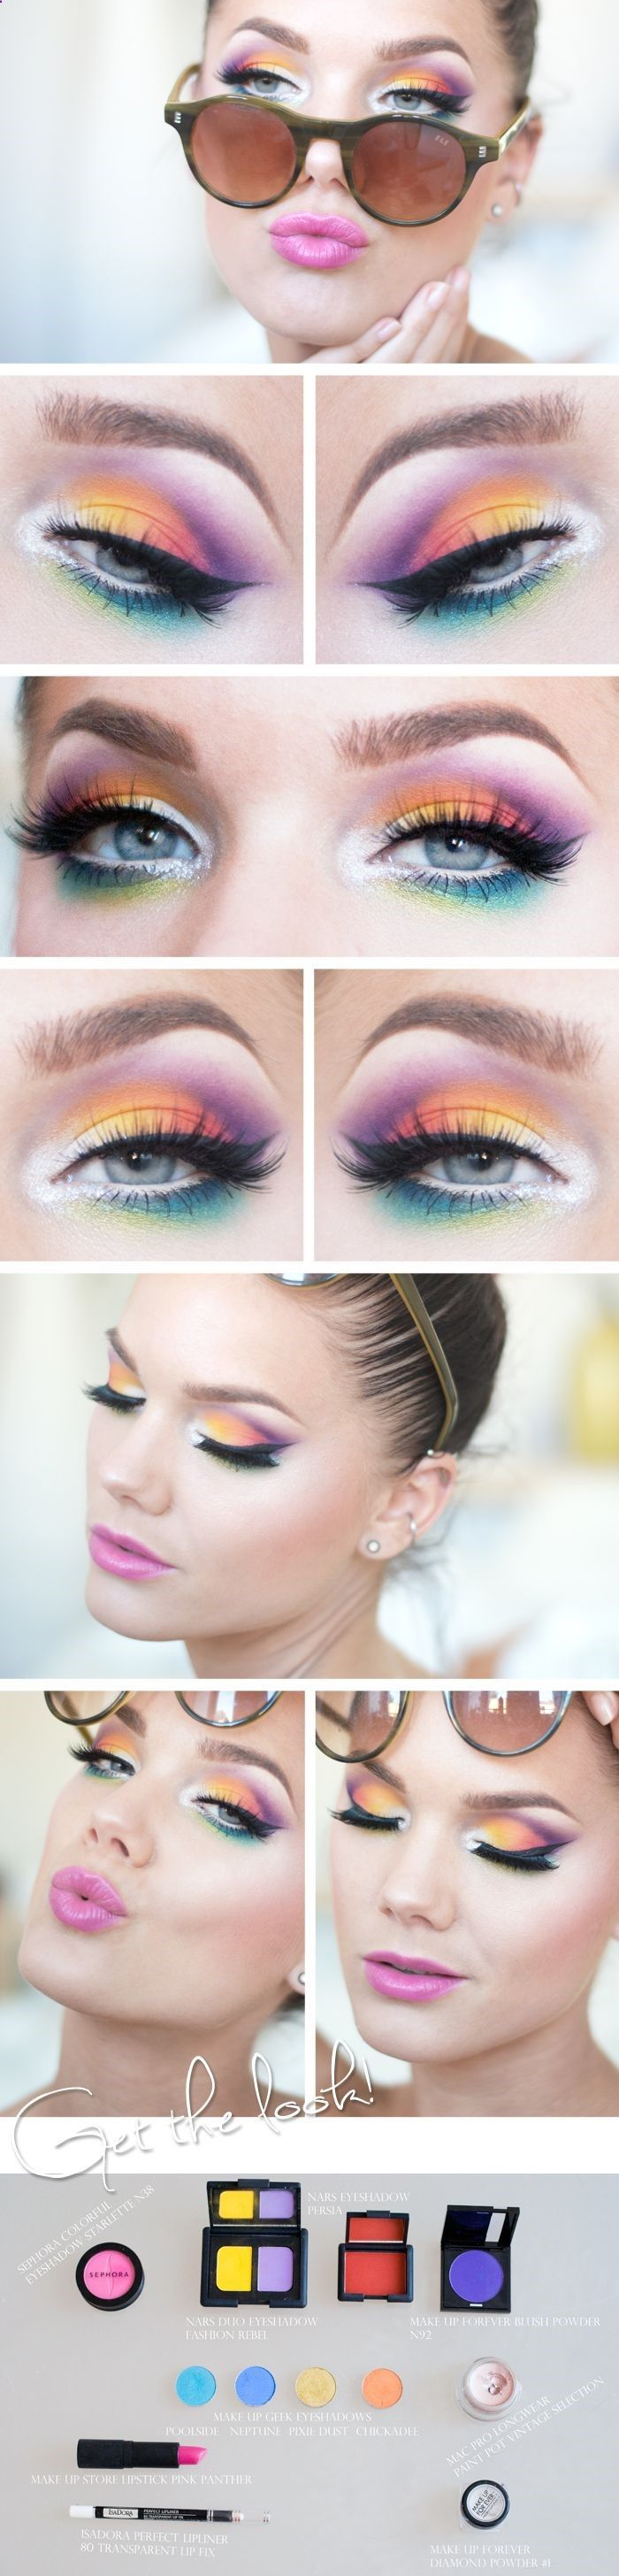 best make up and beauty ideas images on pinterest beauty makeup